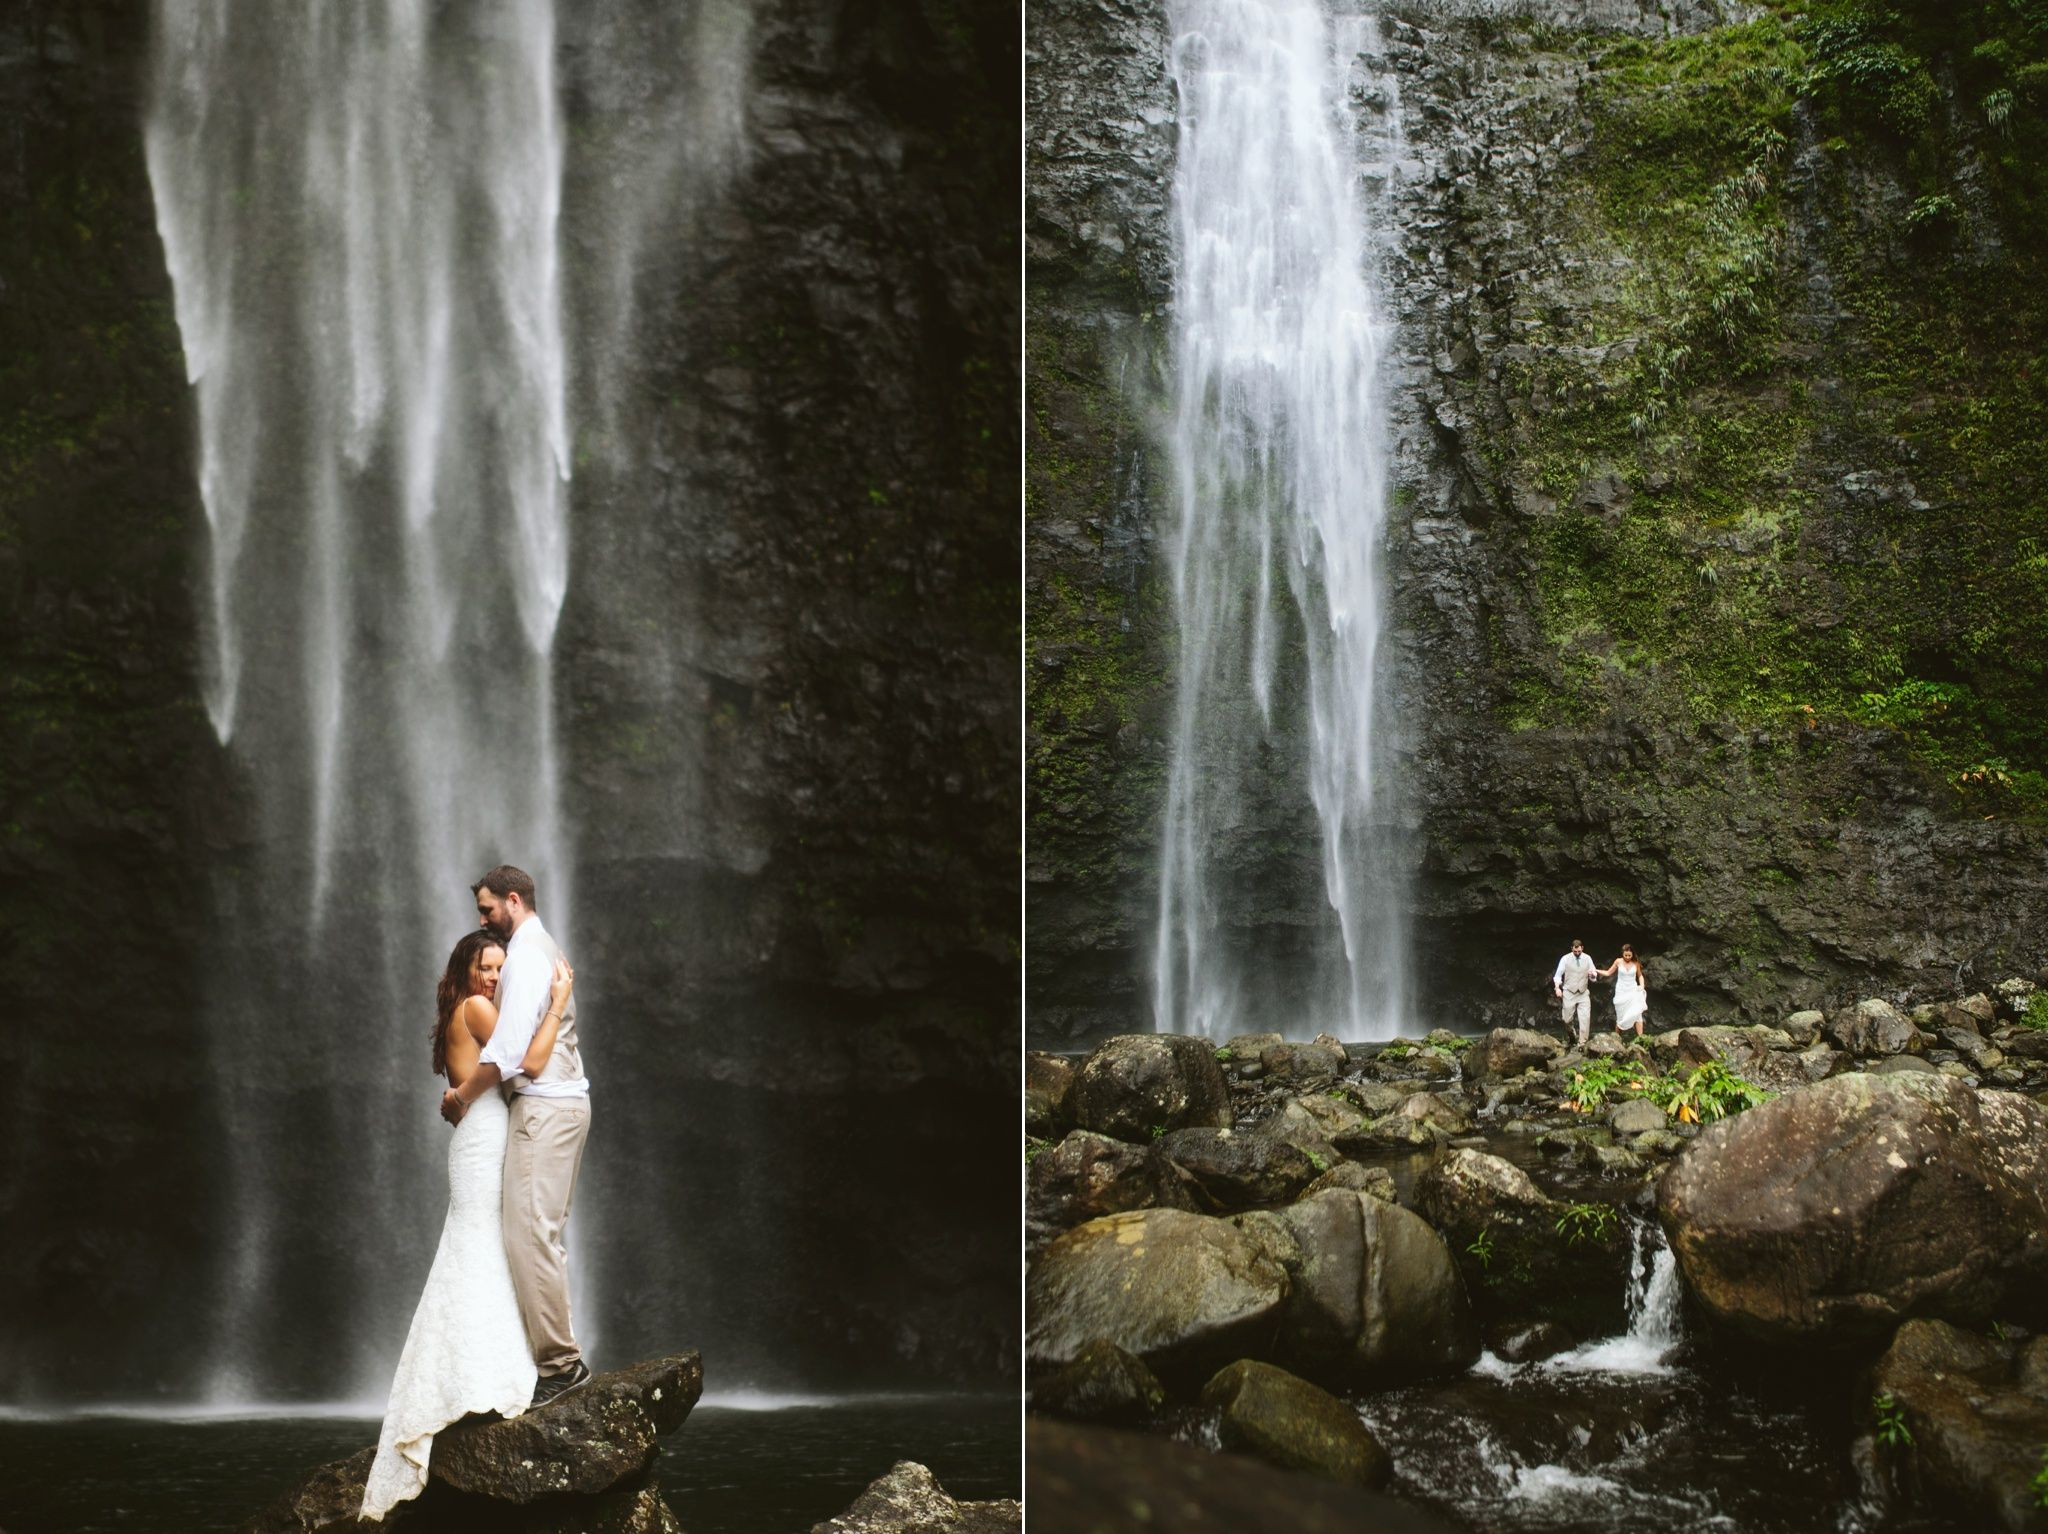 Waterfall Elopement - Like what we want